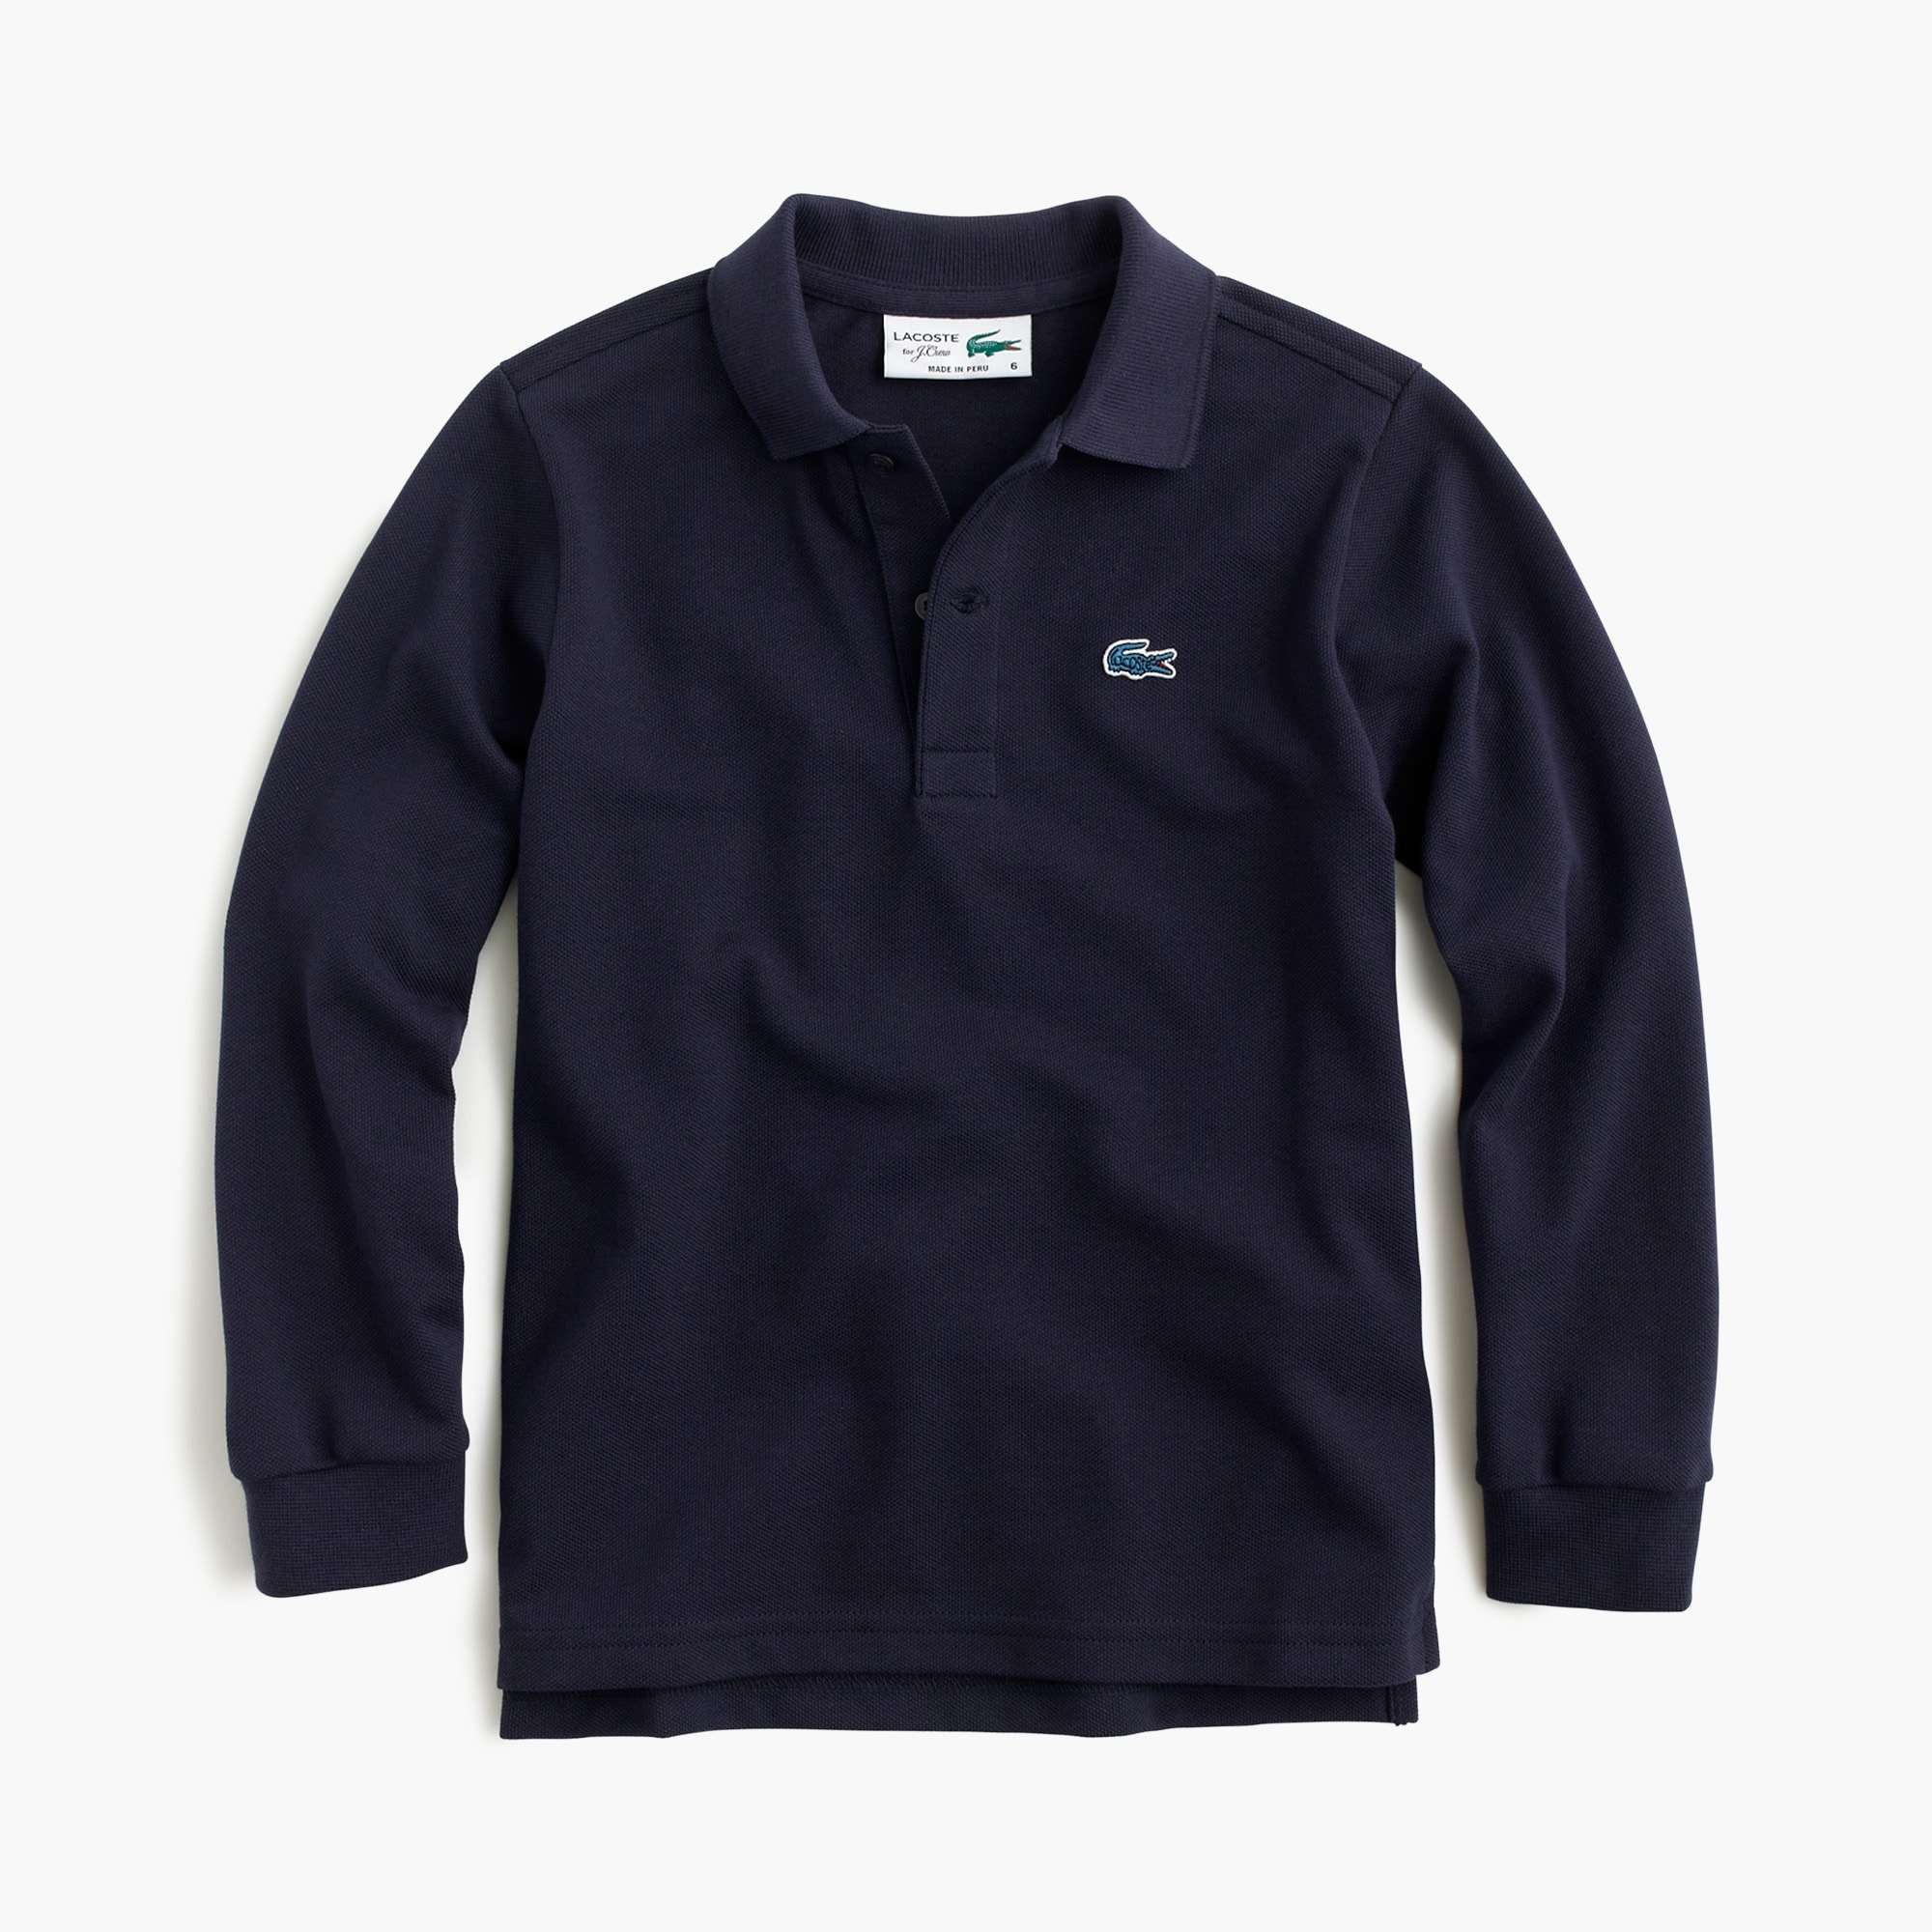 Kids' Lacoste® for J.Crew long-sleeve polo shirt boy j.crew in good company c